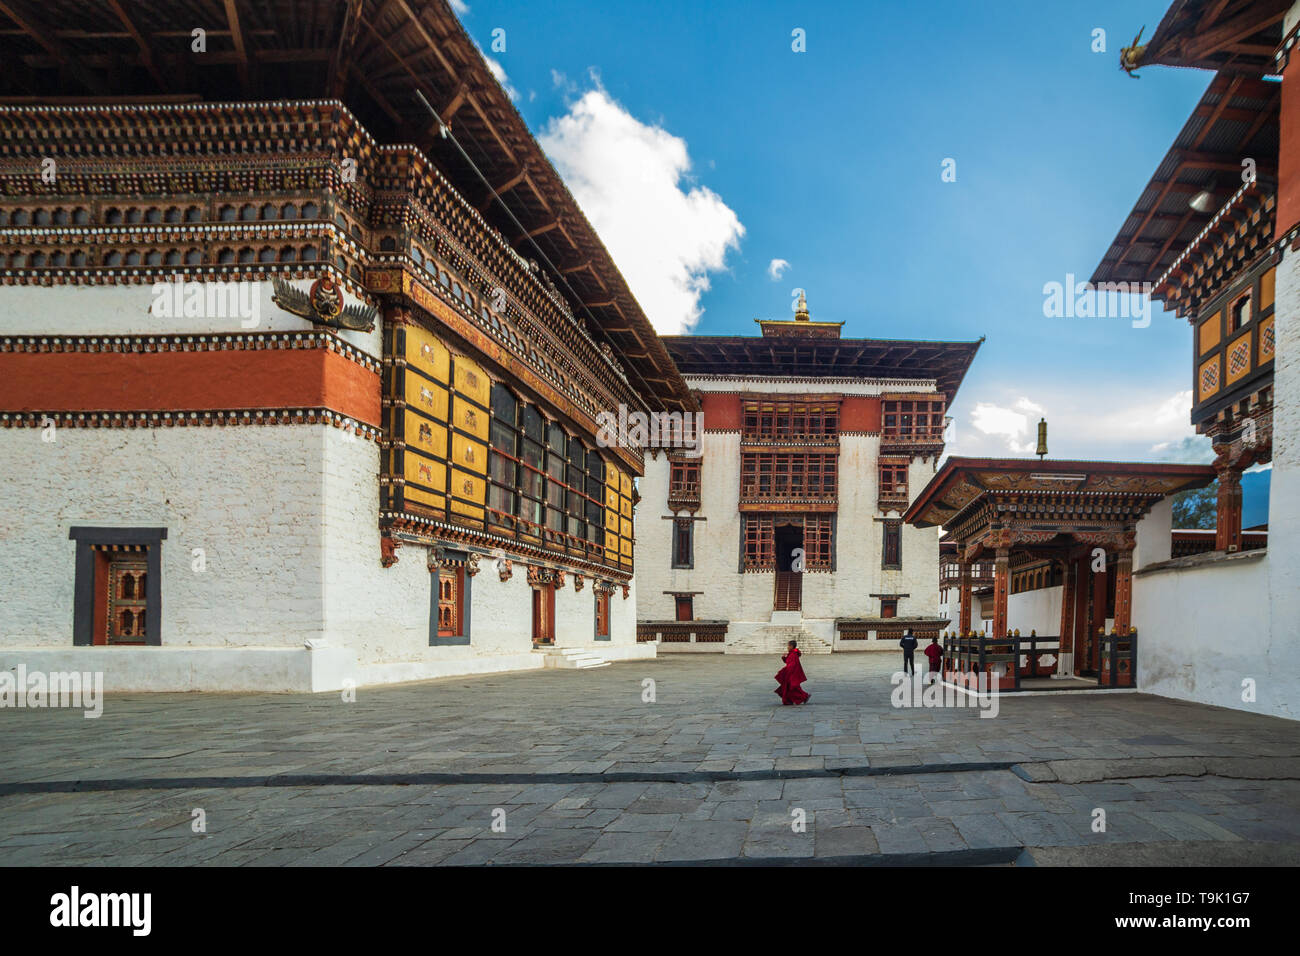 The monastry and fortress has been first built in 1641 - Stock Image